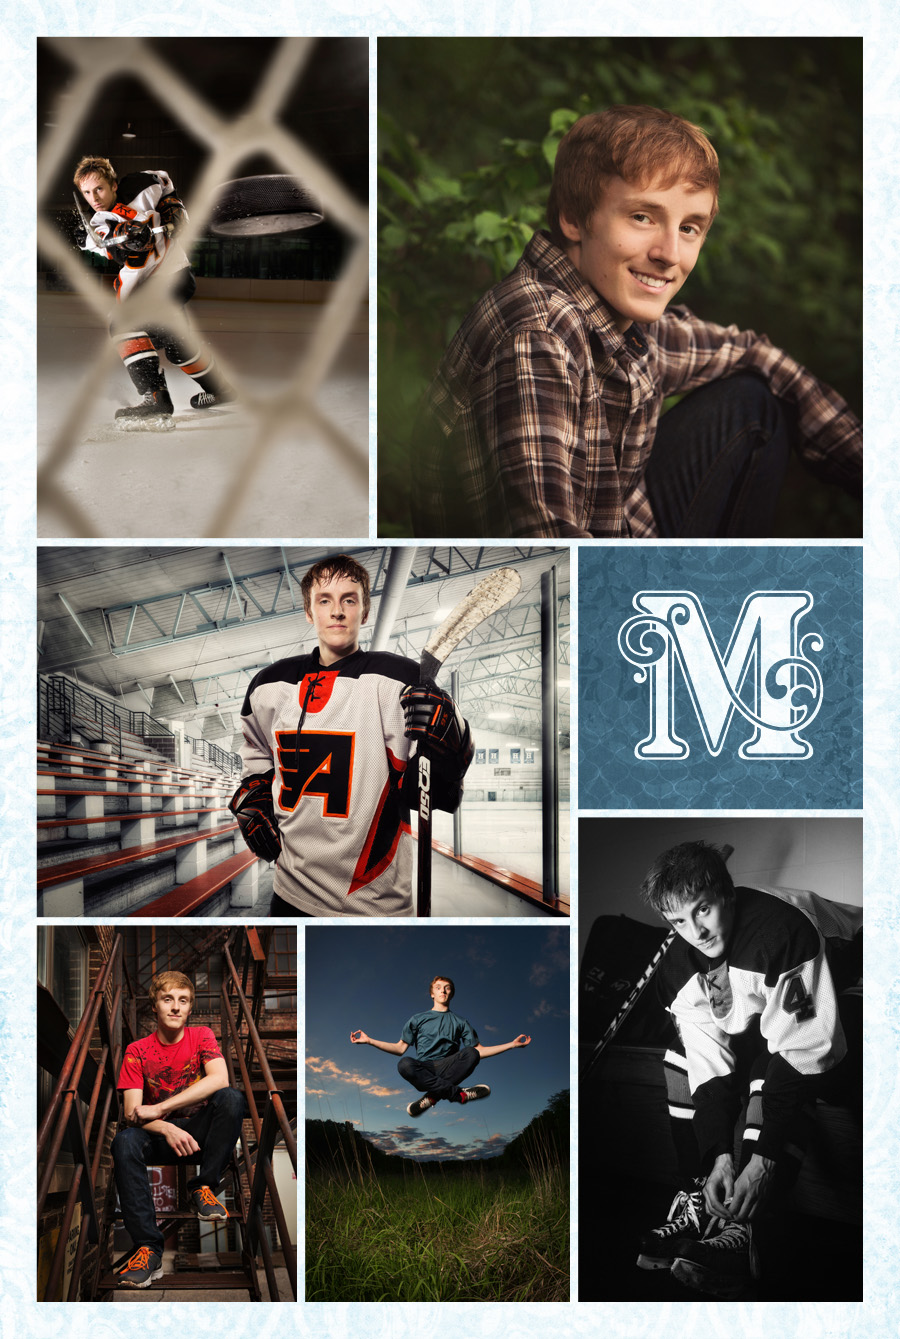 Highlights from Jess's senior portrait session at McClanahan Studio